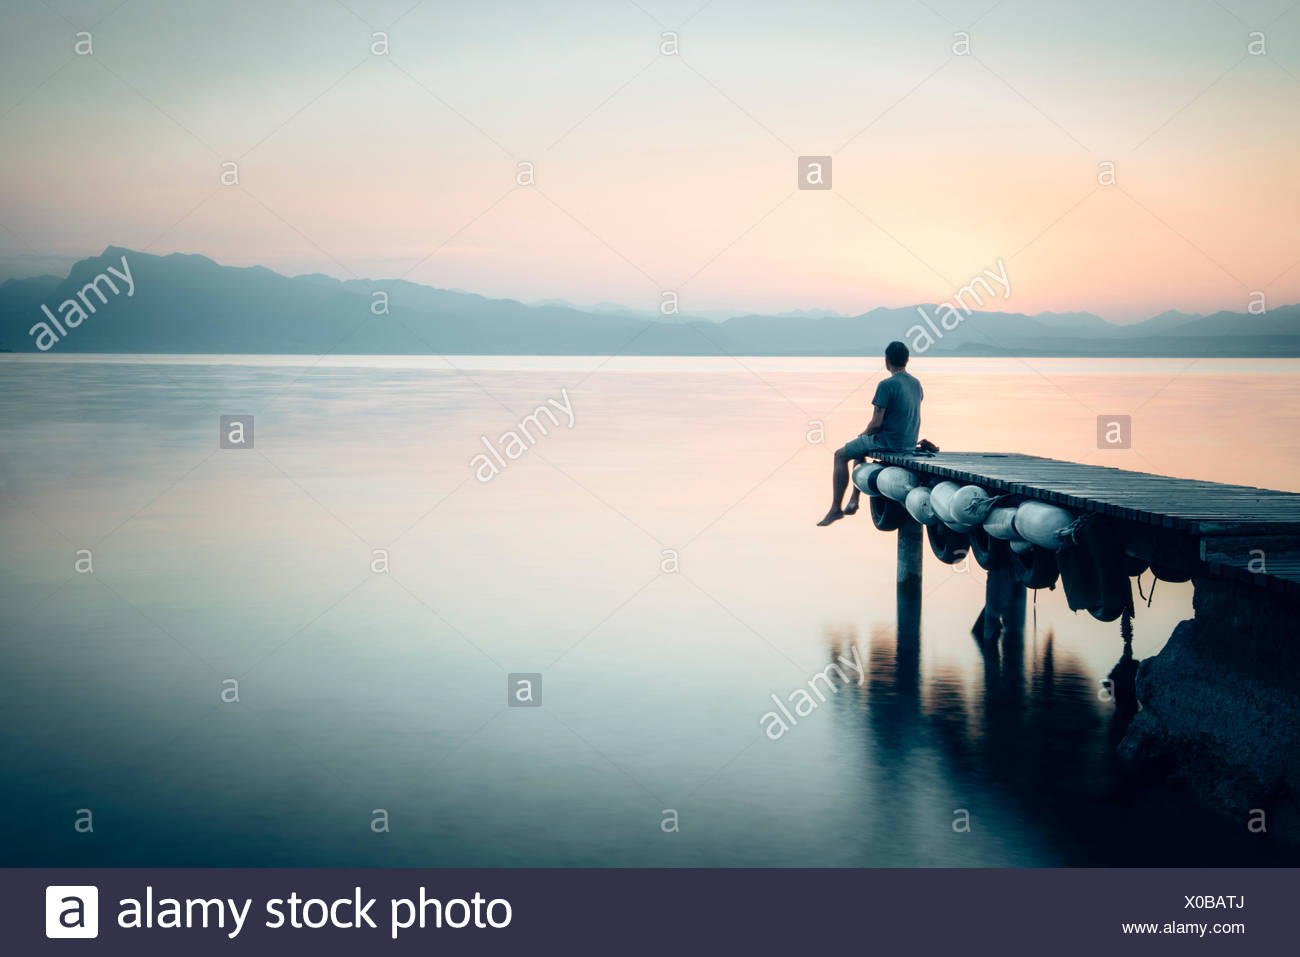 Man sitting at a jetty and looking at the lake - Stock Image